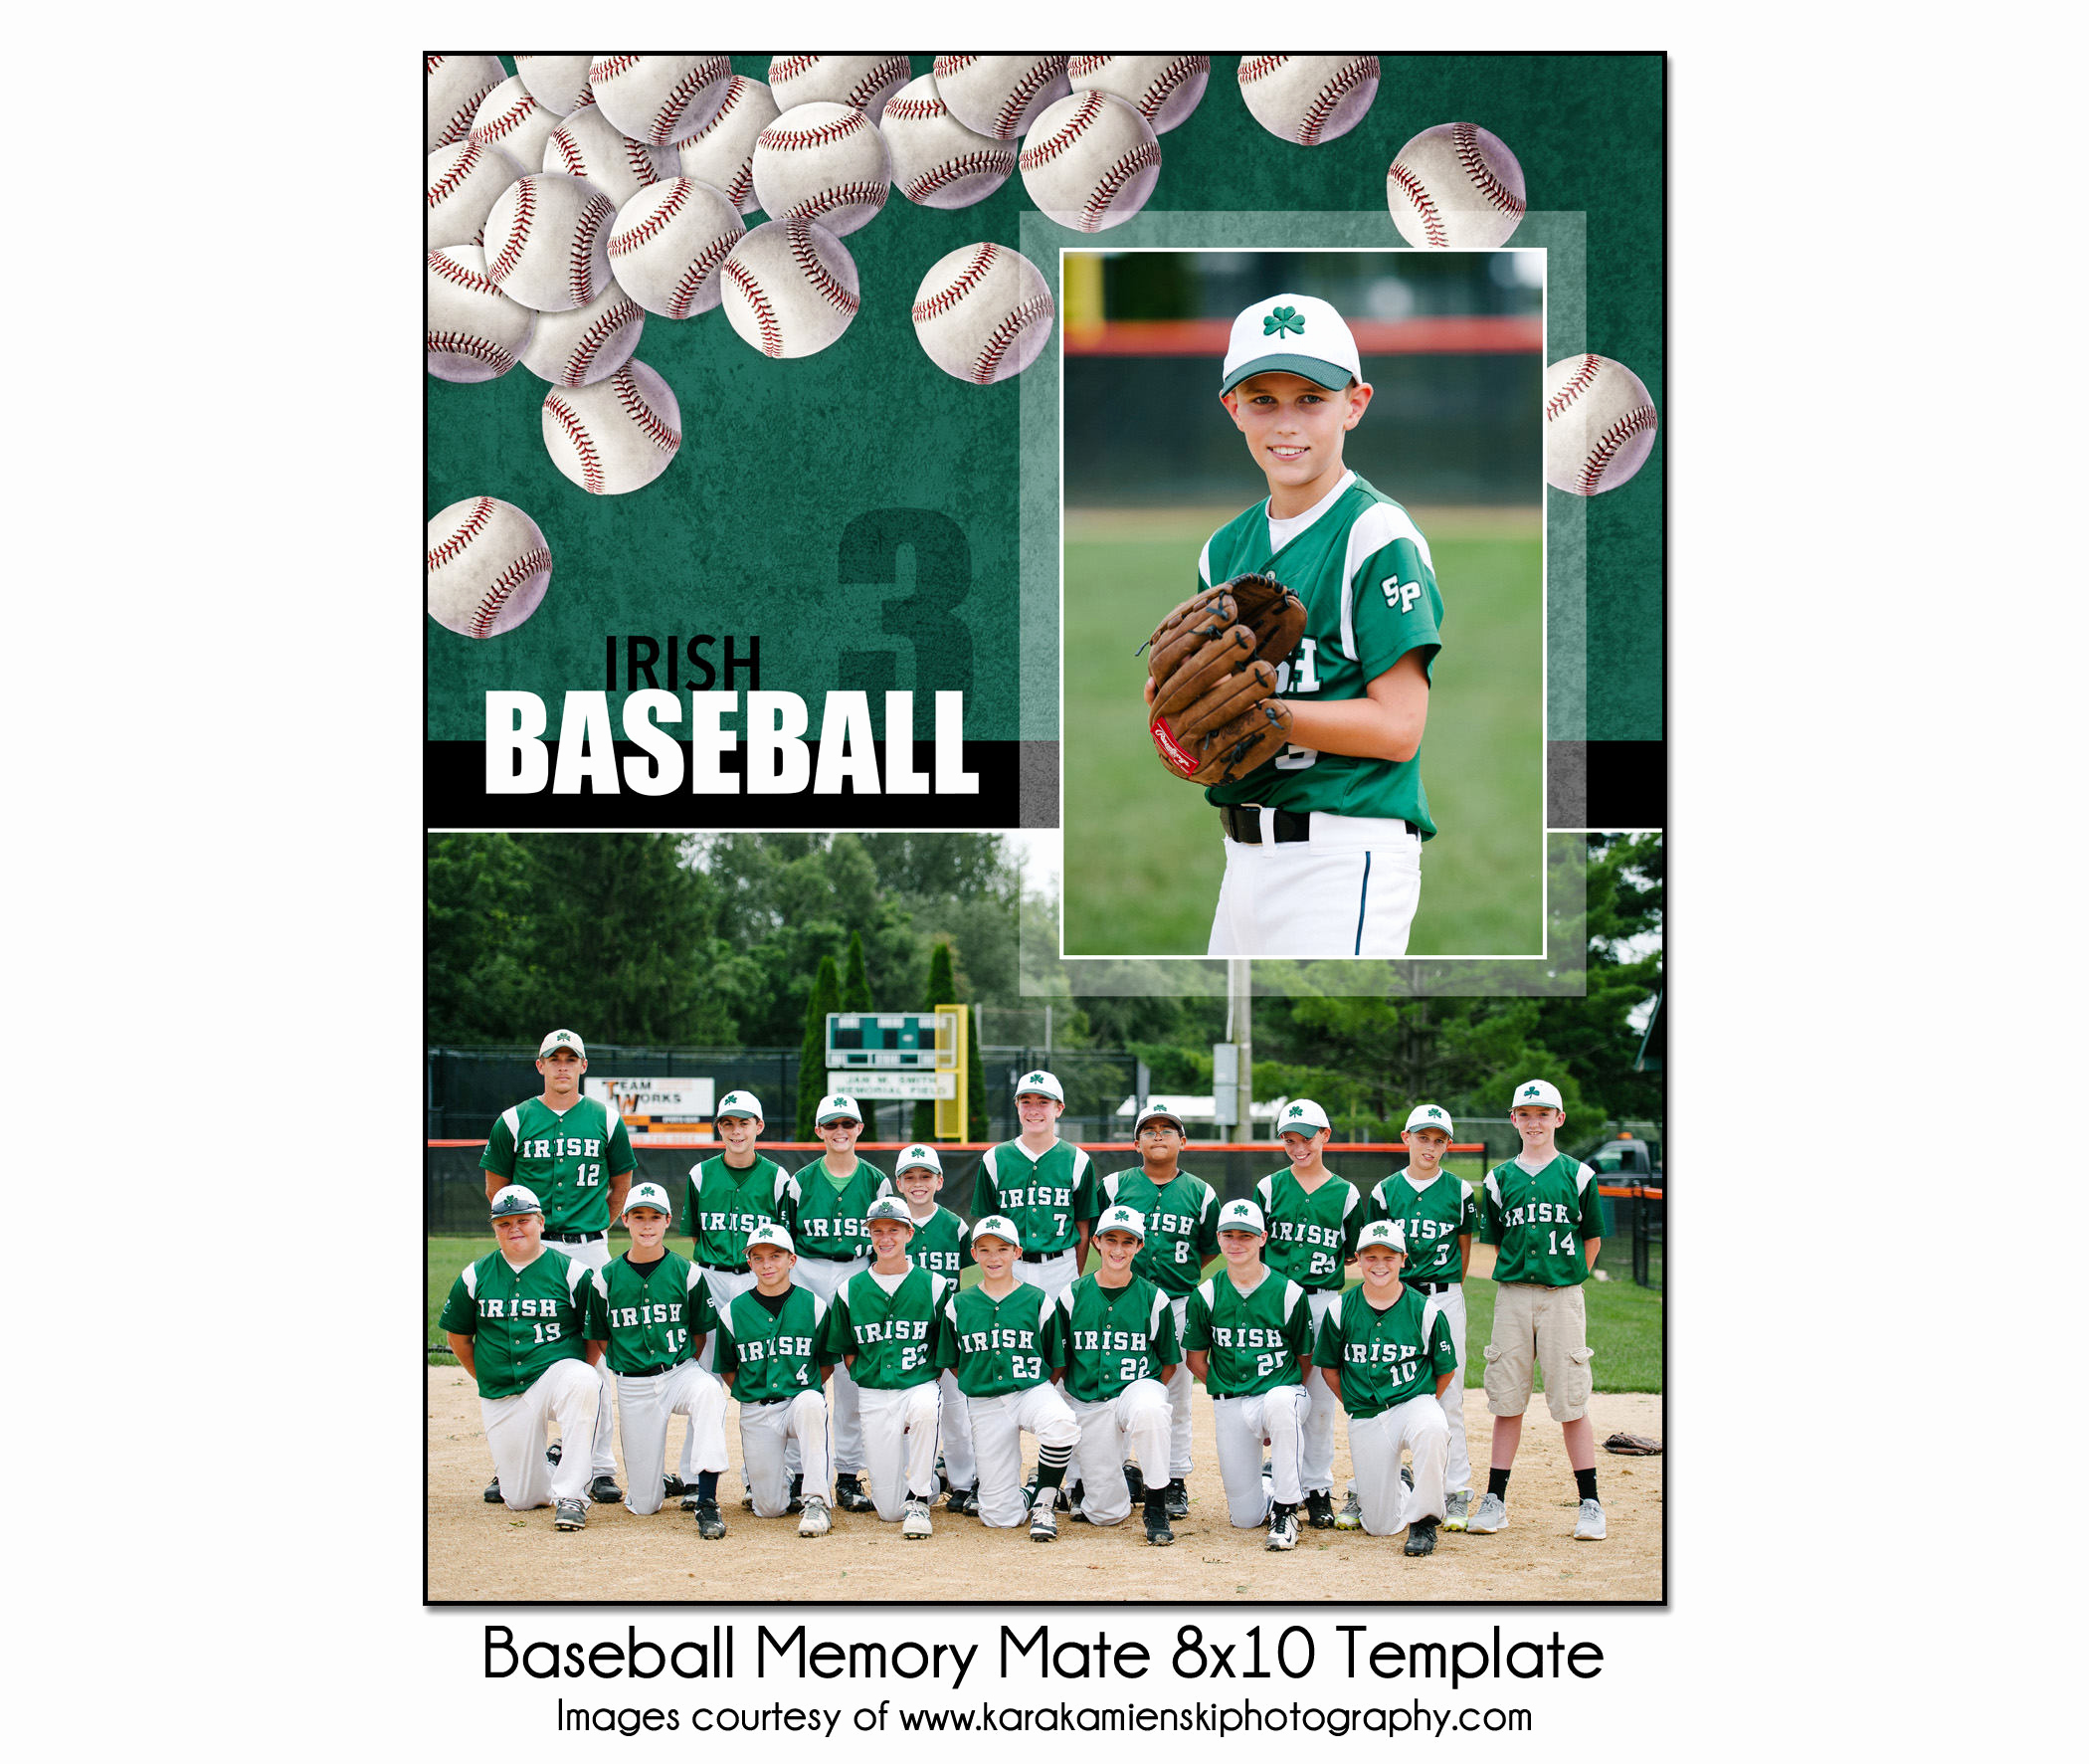 Softball Memory Mate Template Beautiful Baseball Mm8 8x10 Memory Mate Template Sports